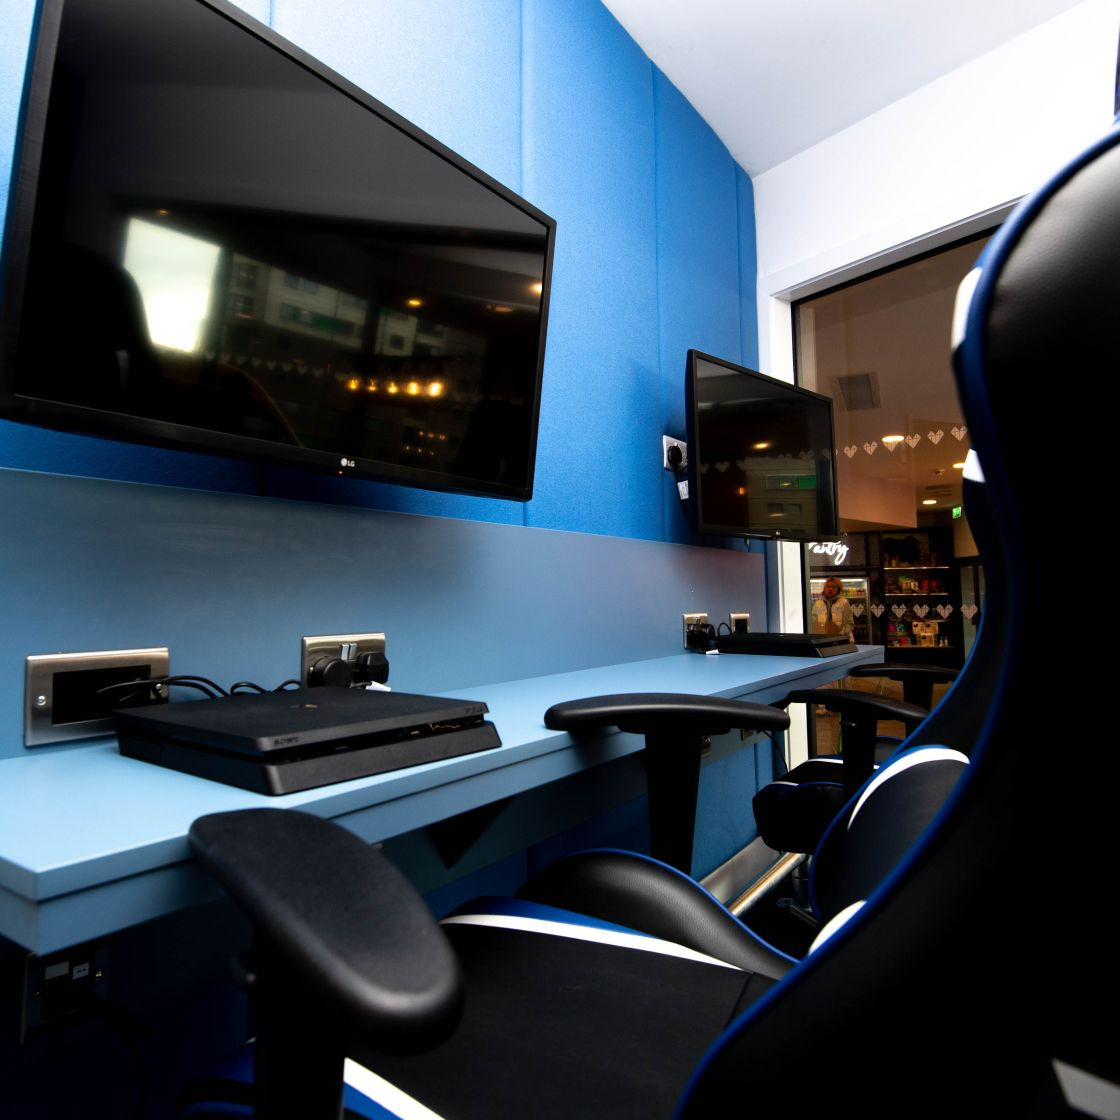 Gaming room with PlayStation consoles. IconInc, The Edge. Student Accommodation in Leeds